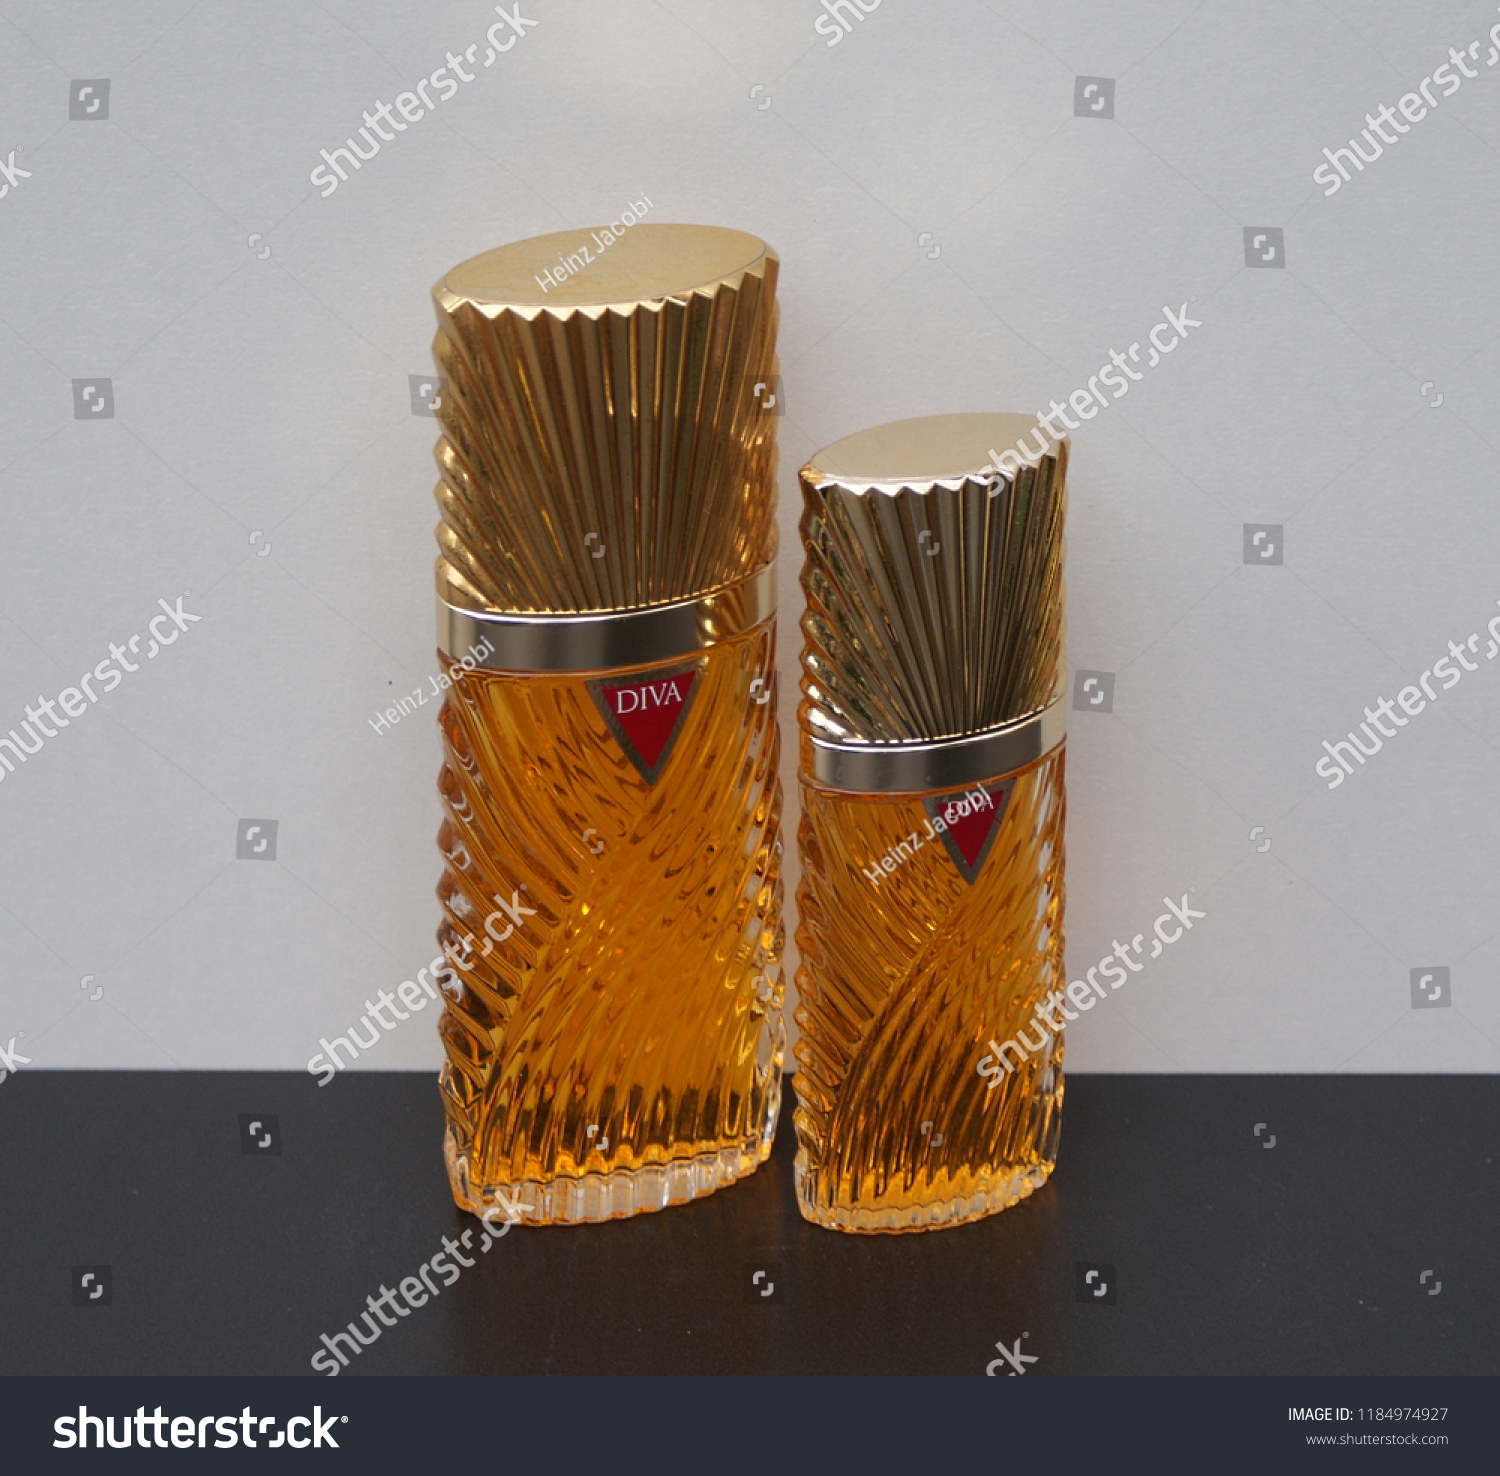 Diva Fragrance Ladies Perfume Bottle Kassel Stock Photo Edit Now 1184974927